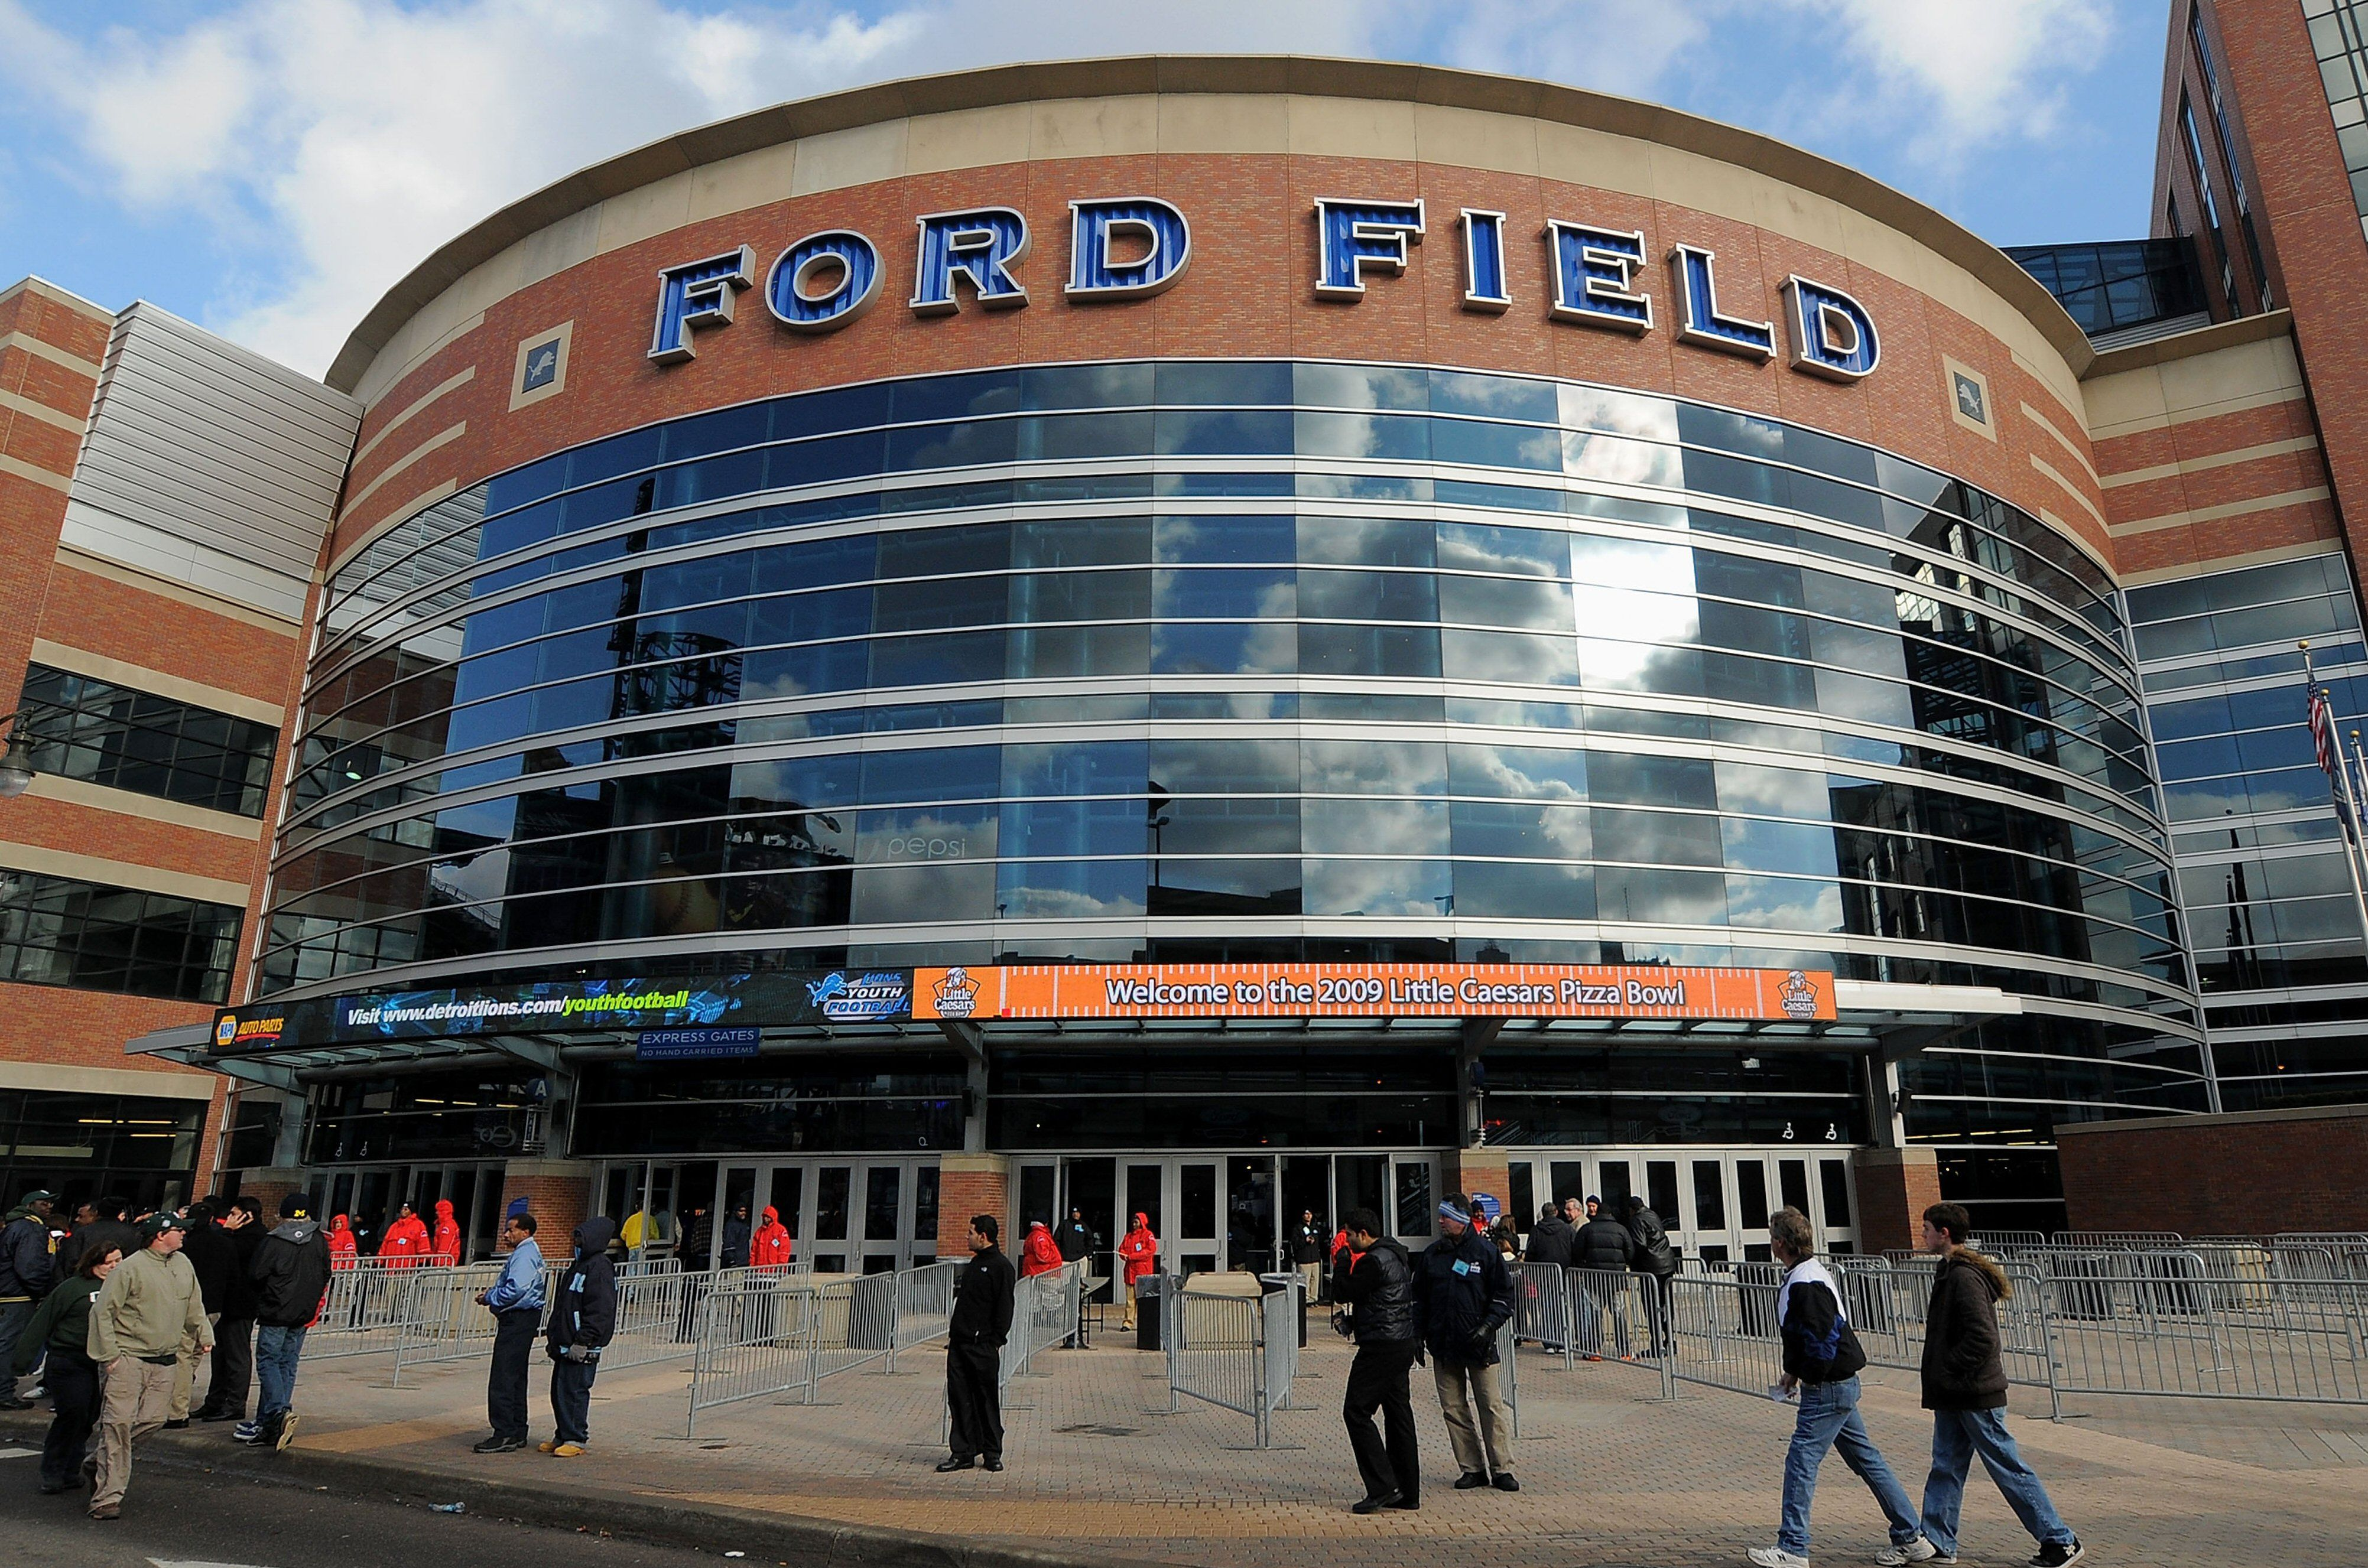 Curved glass entry to Ford Field in Detroit, Michigan